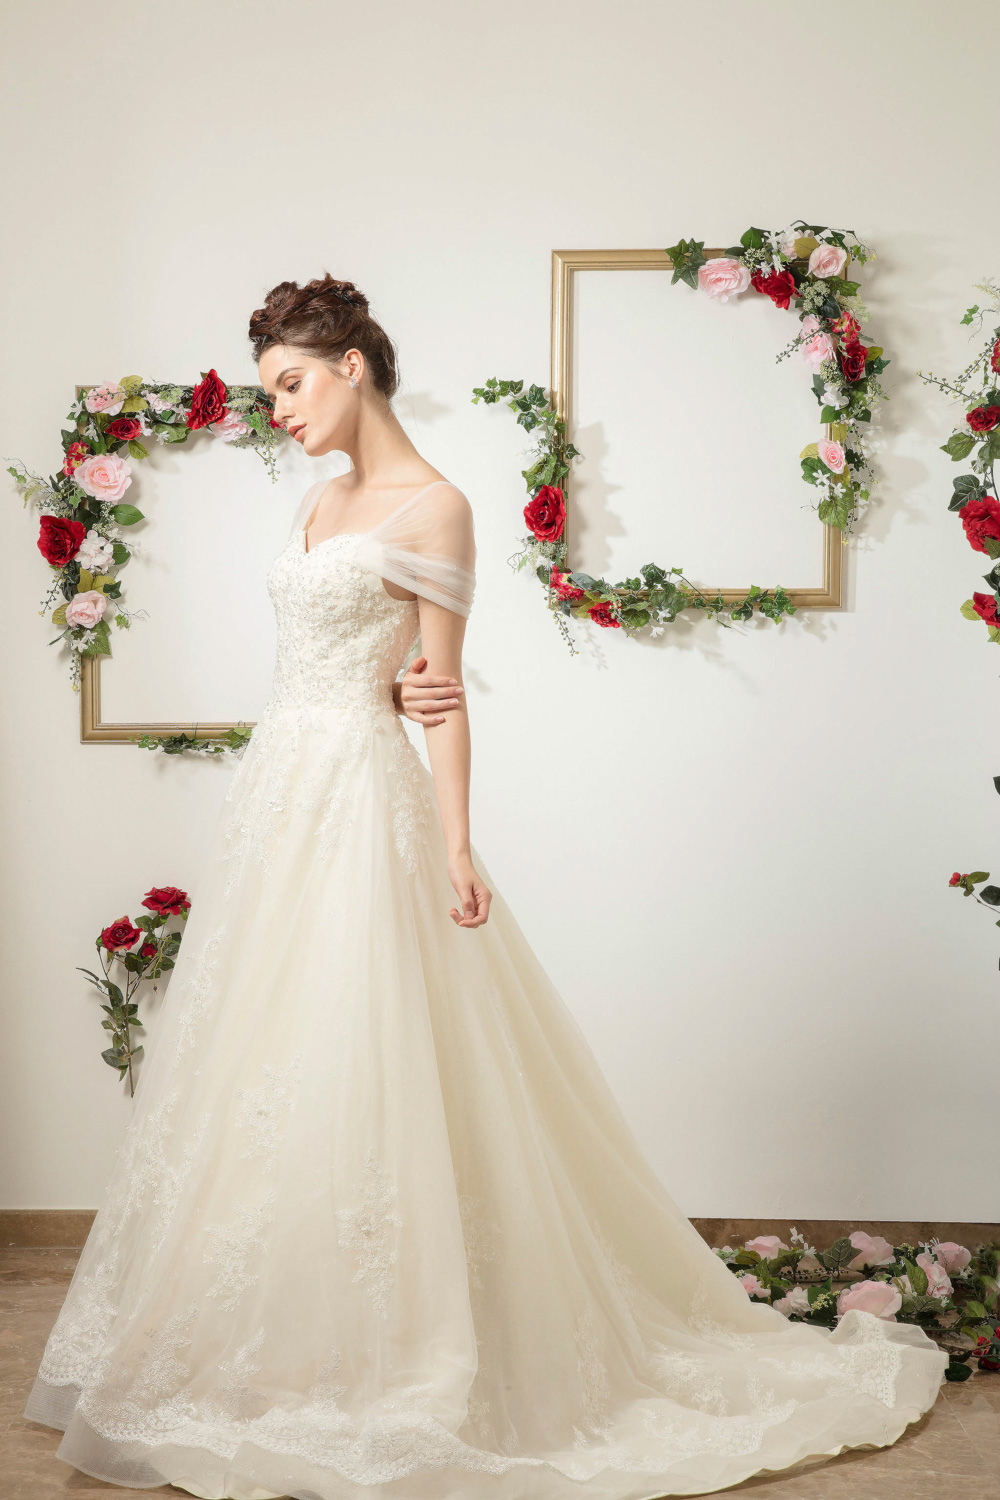 Cap sleeve wedding dress by CCM Wedding